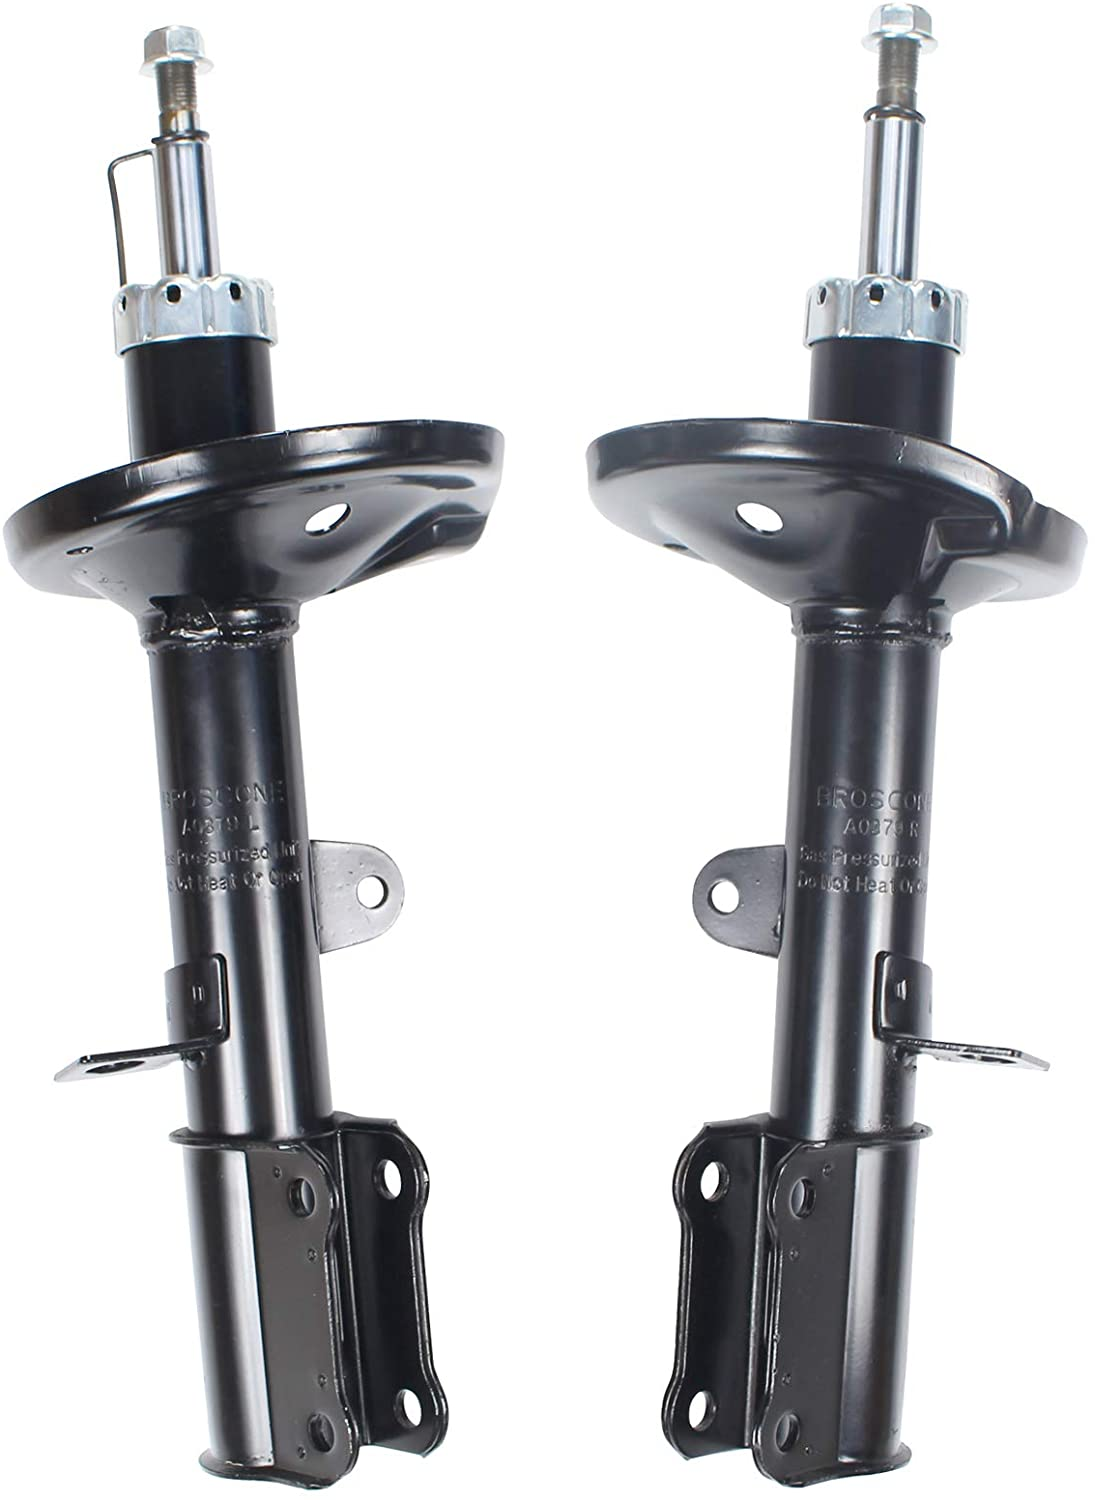 BROSCONE A0379 2 Pieces 1 Pair Suspension Rear Shocks Struts Assembly Compatible with 1999 2000 2001 2002 Prizm